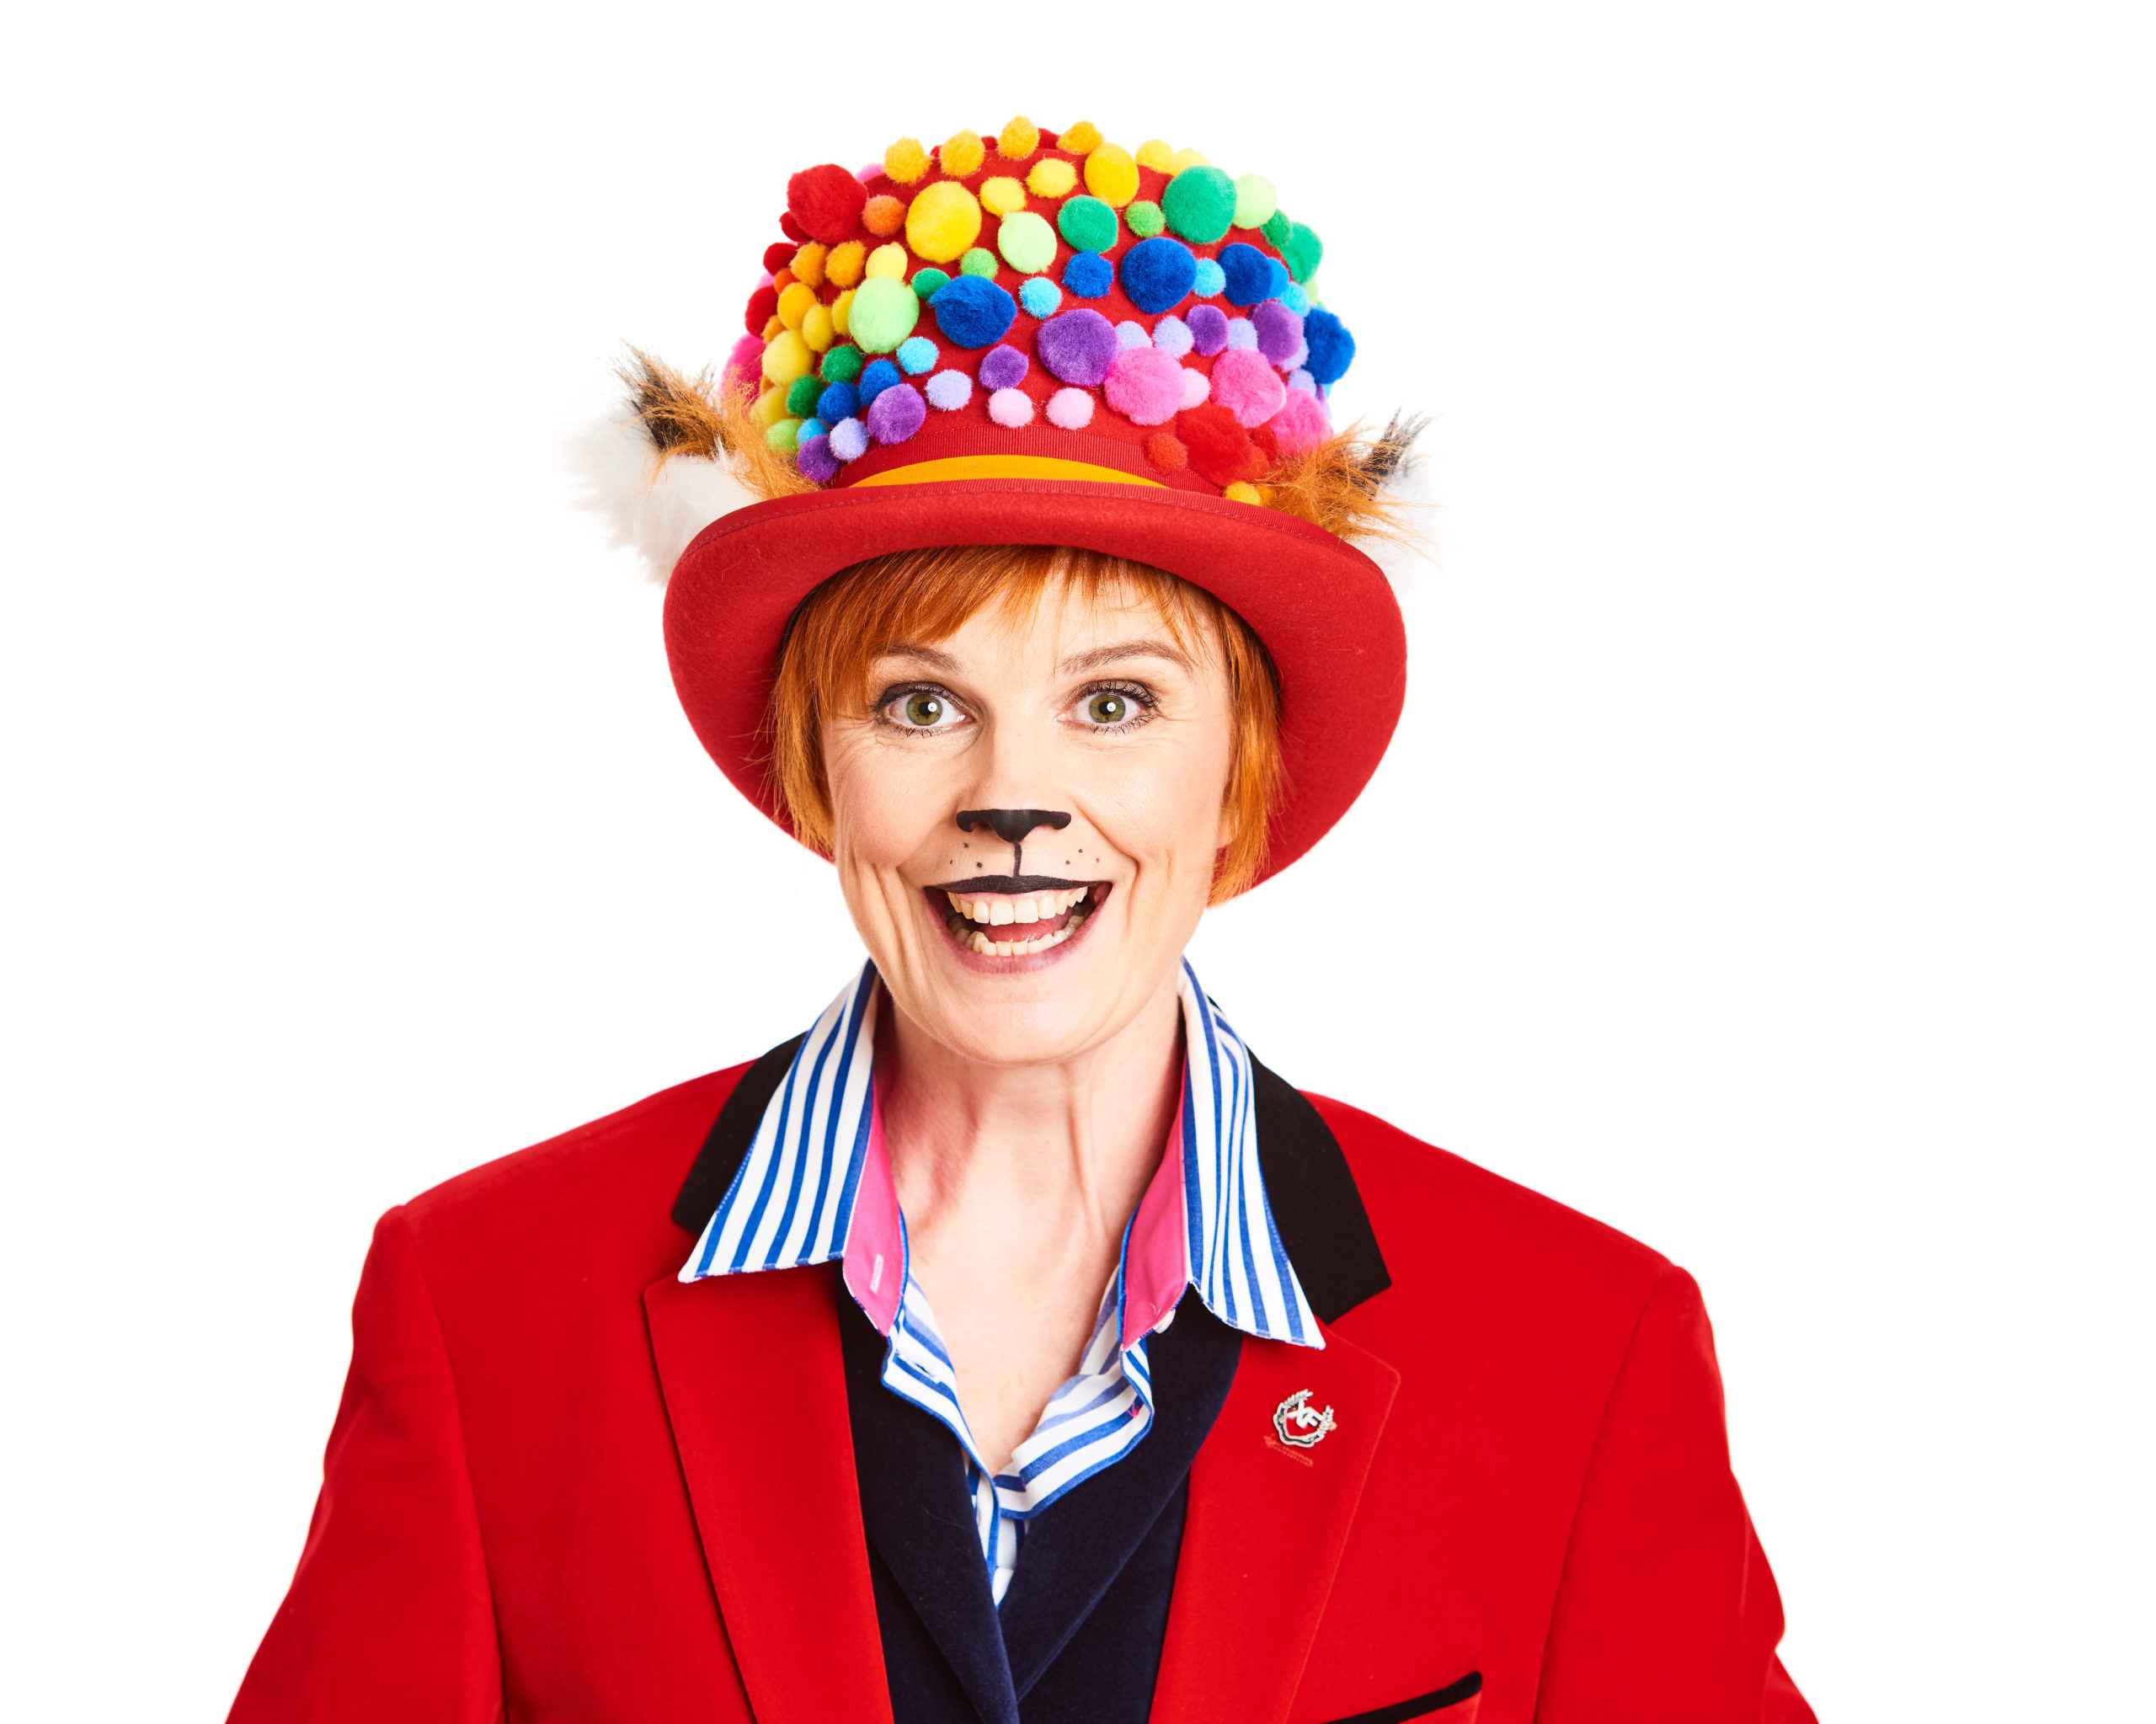 Photo of Louise Wells wearing a bright red jacket and top hat, which has a rainbow of 3D dots swirling around it.